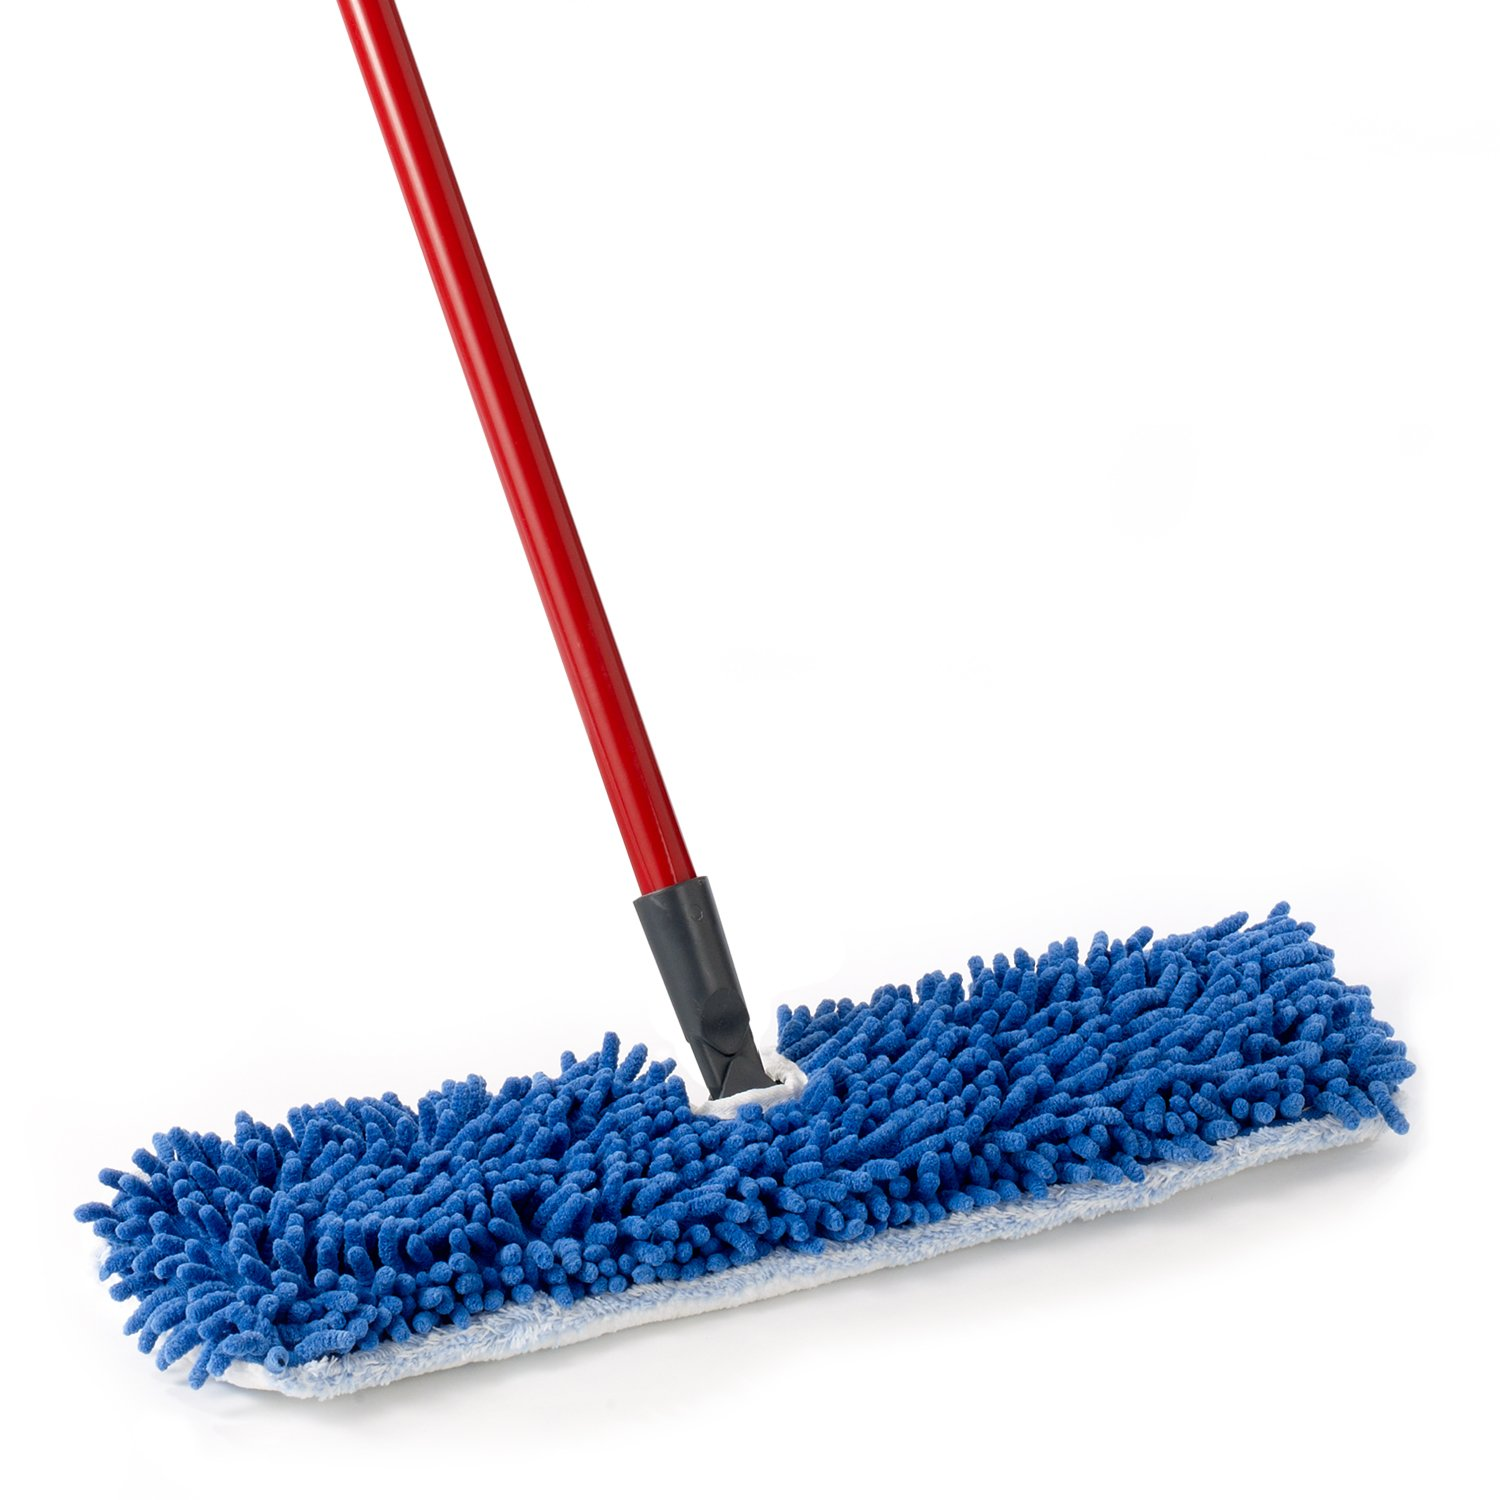 Best mop for hardwood floors top 10 best mop to clean wood floors ampampampampampampampampampampampampampampampampampampampampampampampampampampampampampampampampampampampampampampamp dailygadgetfo Choice Image